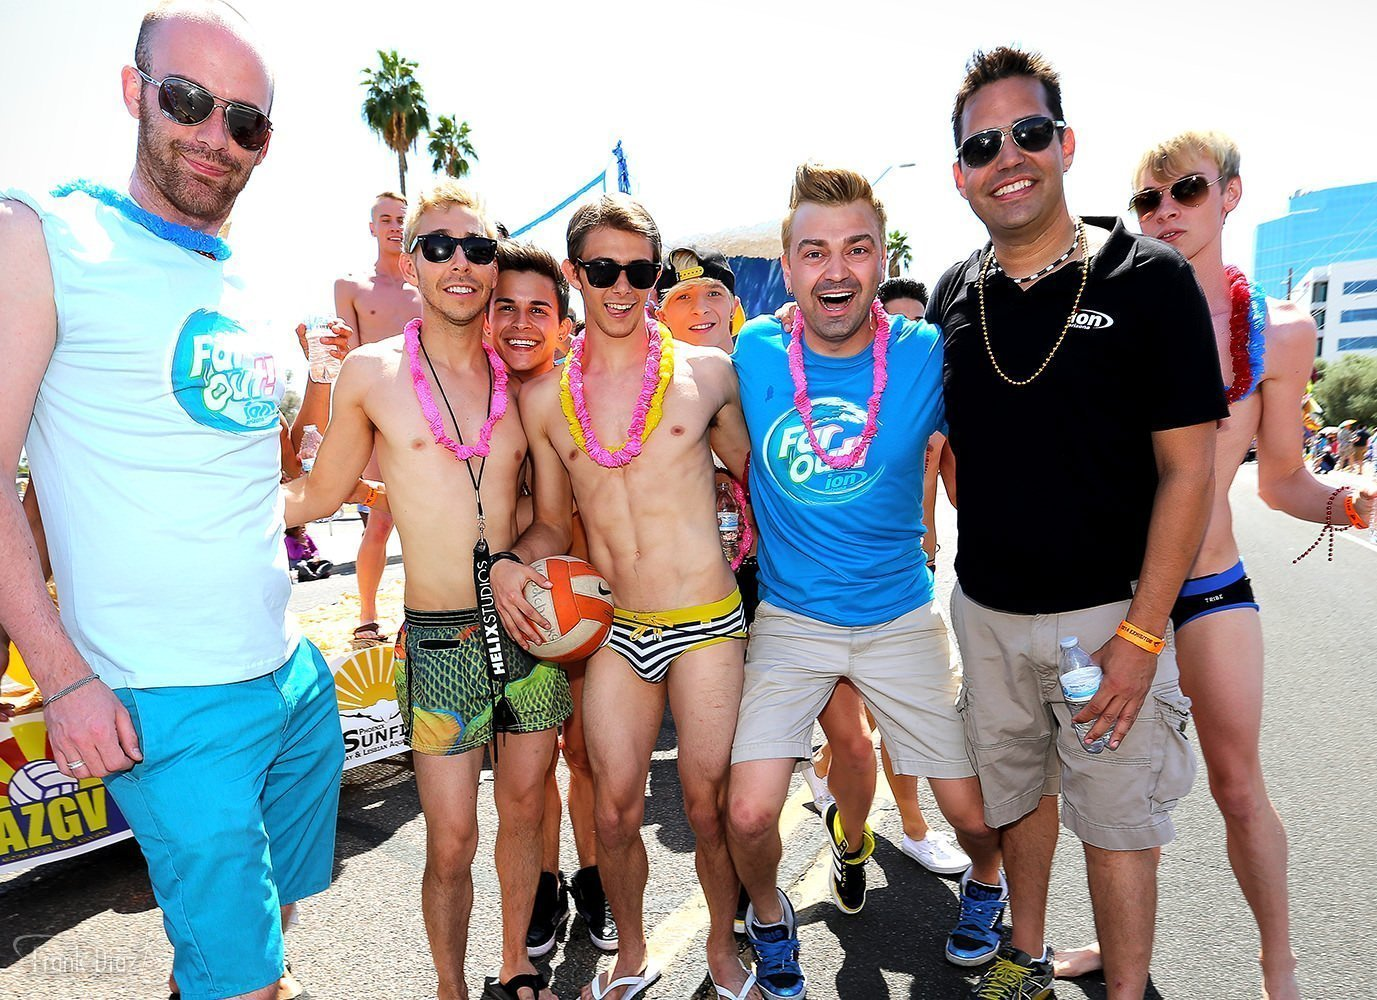 from Holden az gay pride